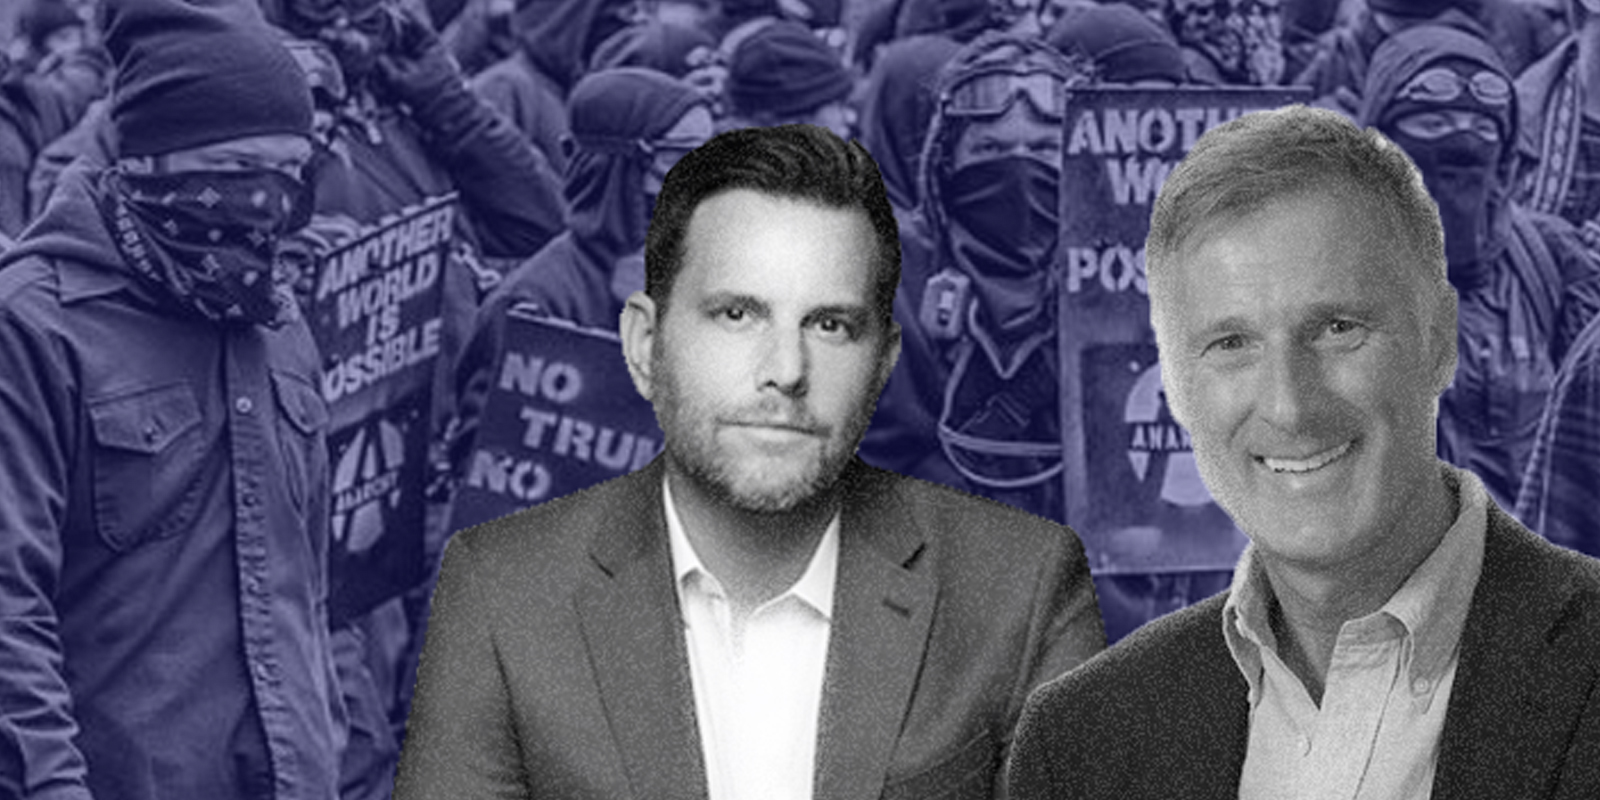 Activists threaten to shut down Dave Rubin and Maxime Bernier event at Canadian college